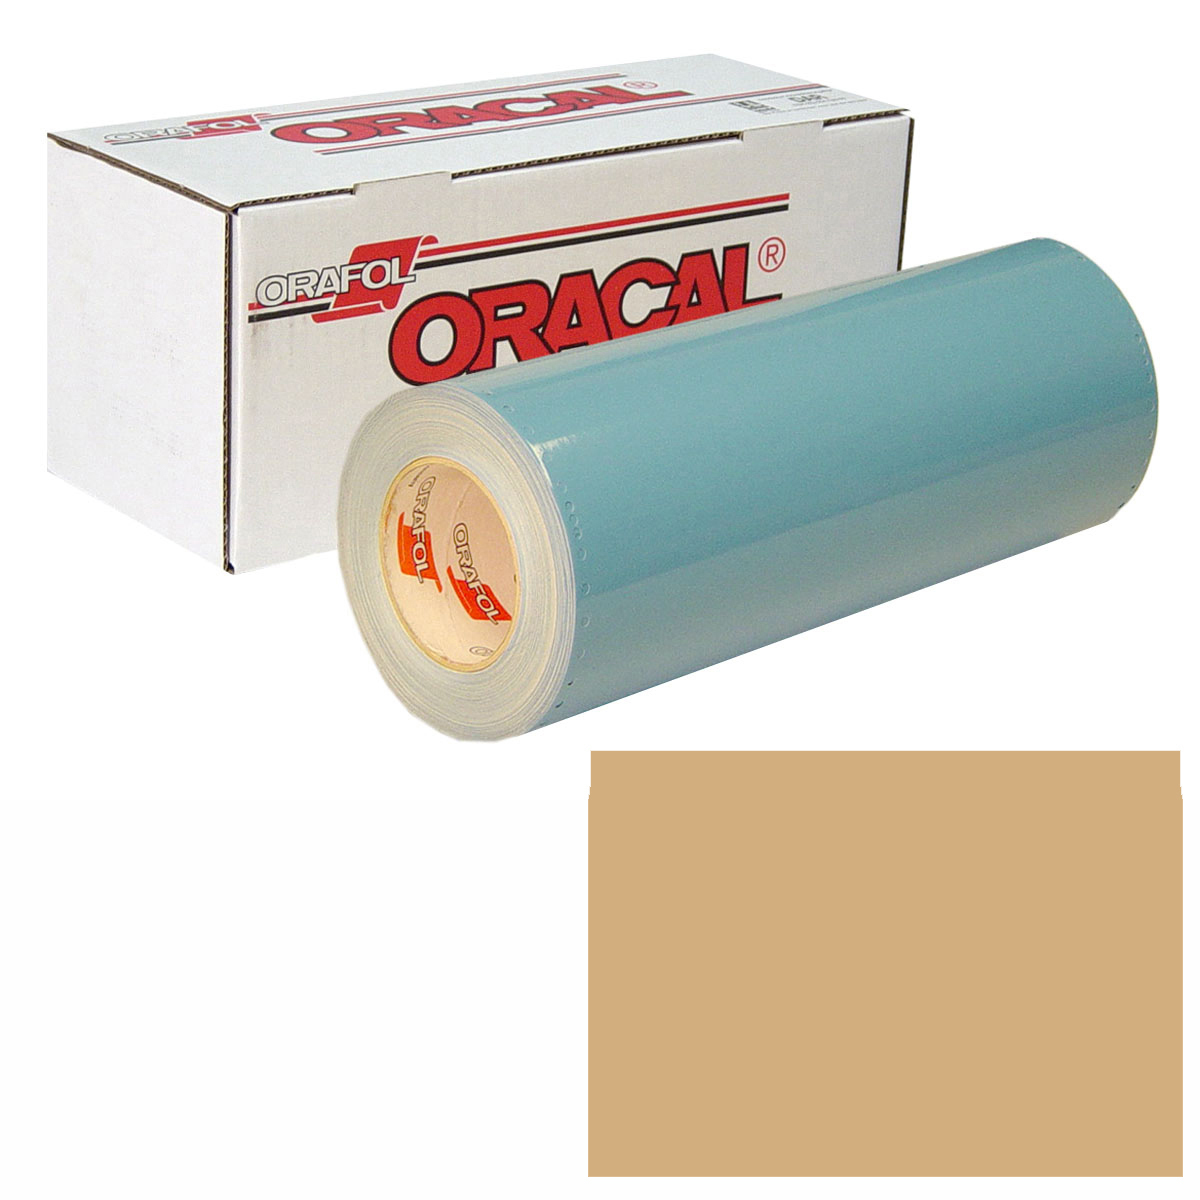 ORACAL 751 Unp 48In X 50Yd 081 Light Brown